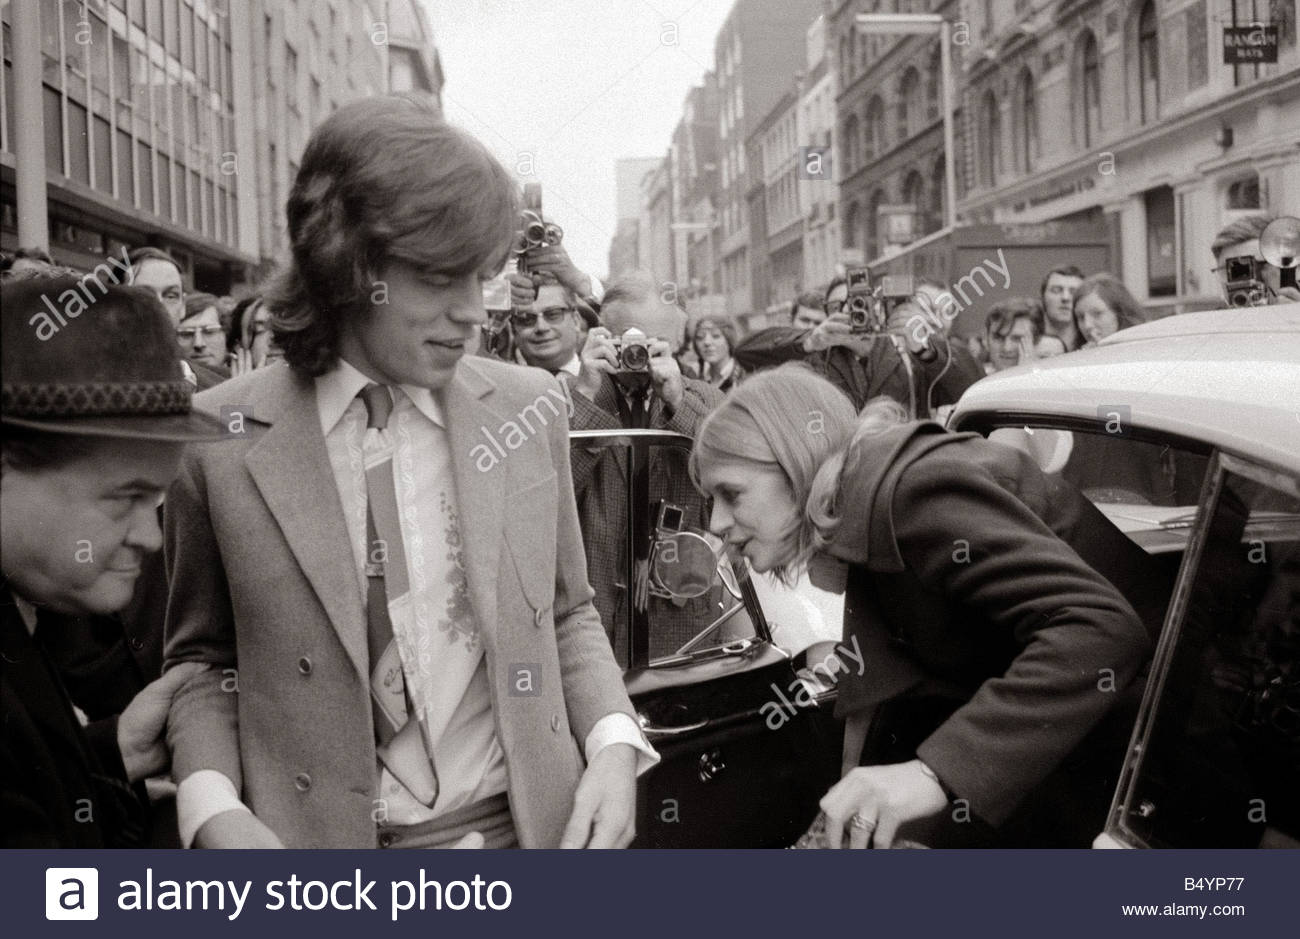 London January 1970 Lead singer of the Rolling Stones pop group Mick Jagger and girlfriend Marianne Faithfull arrive - Stock Image